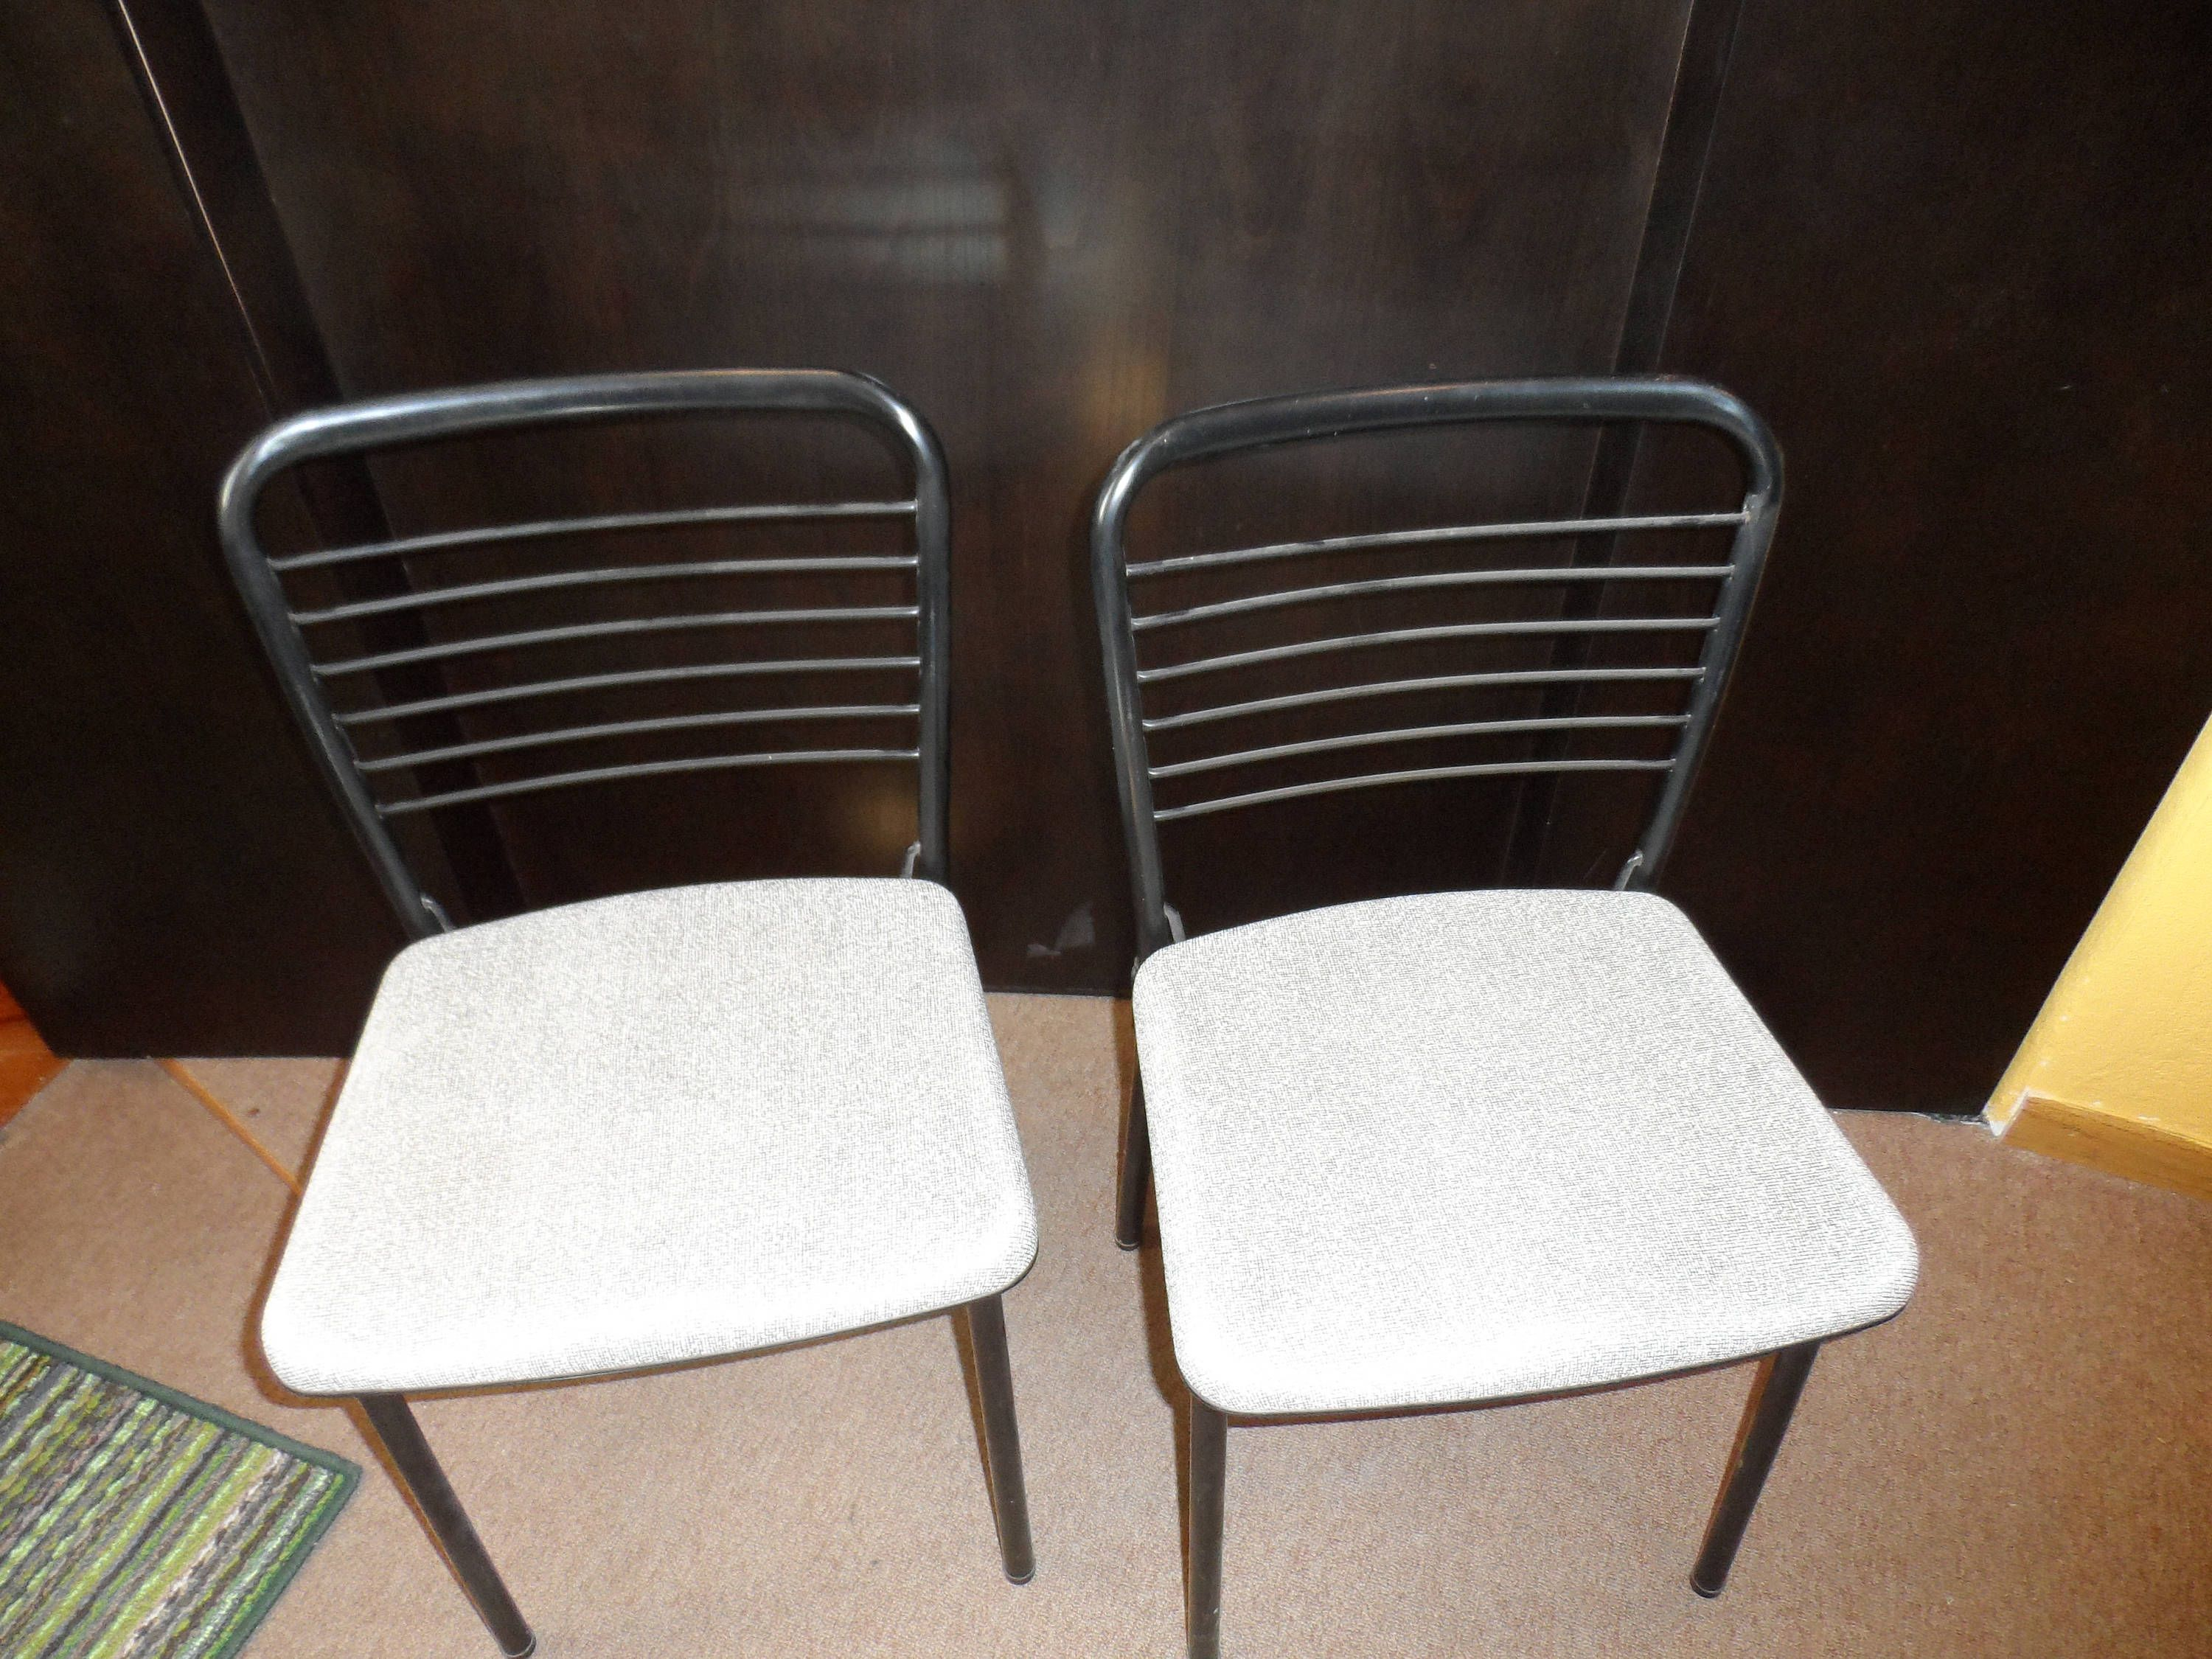 Vintage Cosco folding card table chairs by ResoledResold on Etsy